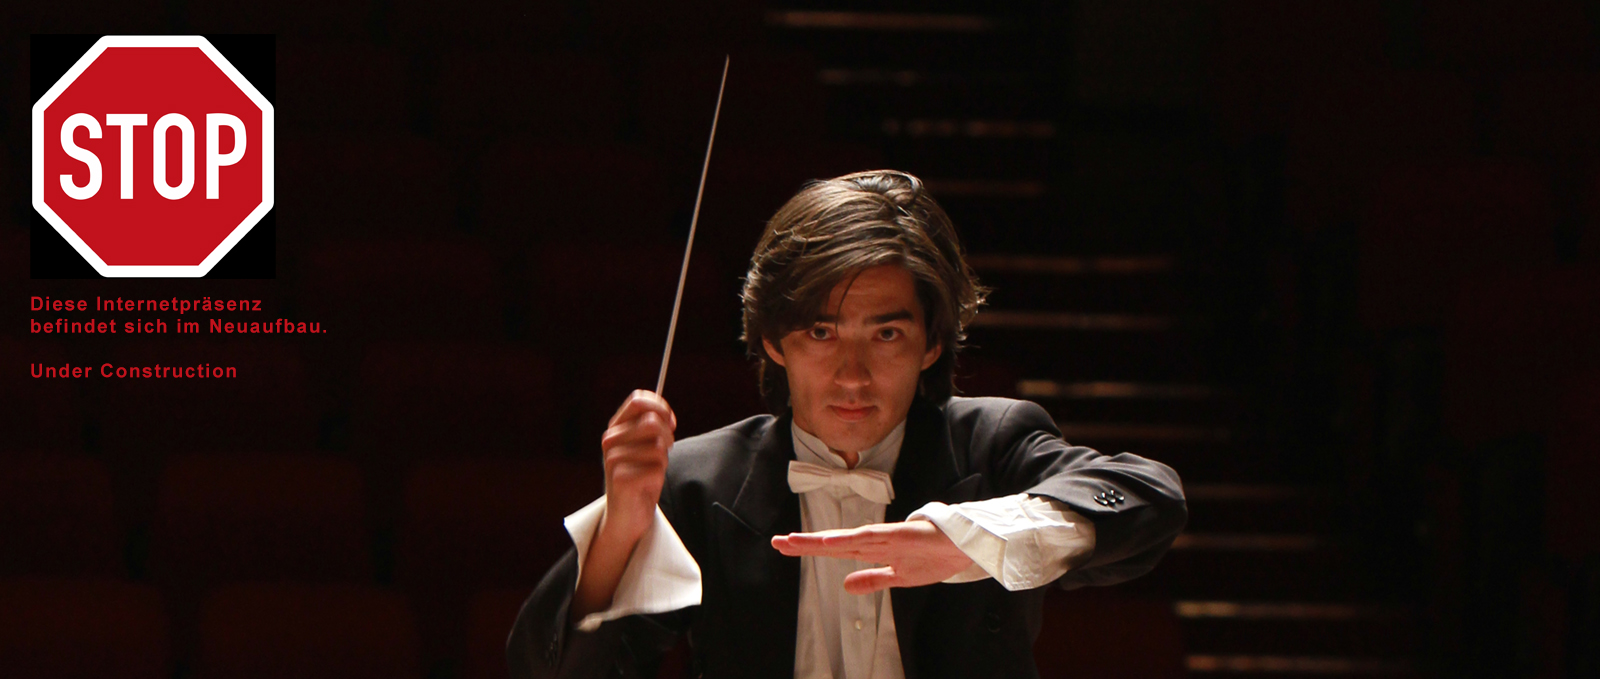 Christian Ludwig, conductor